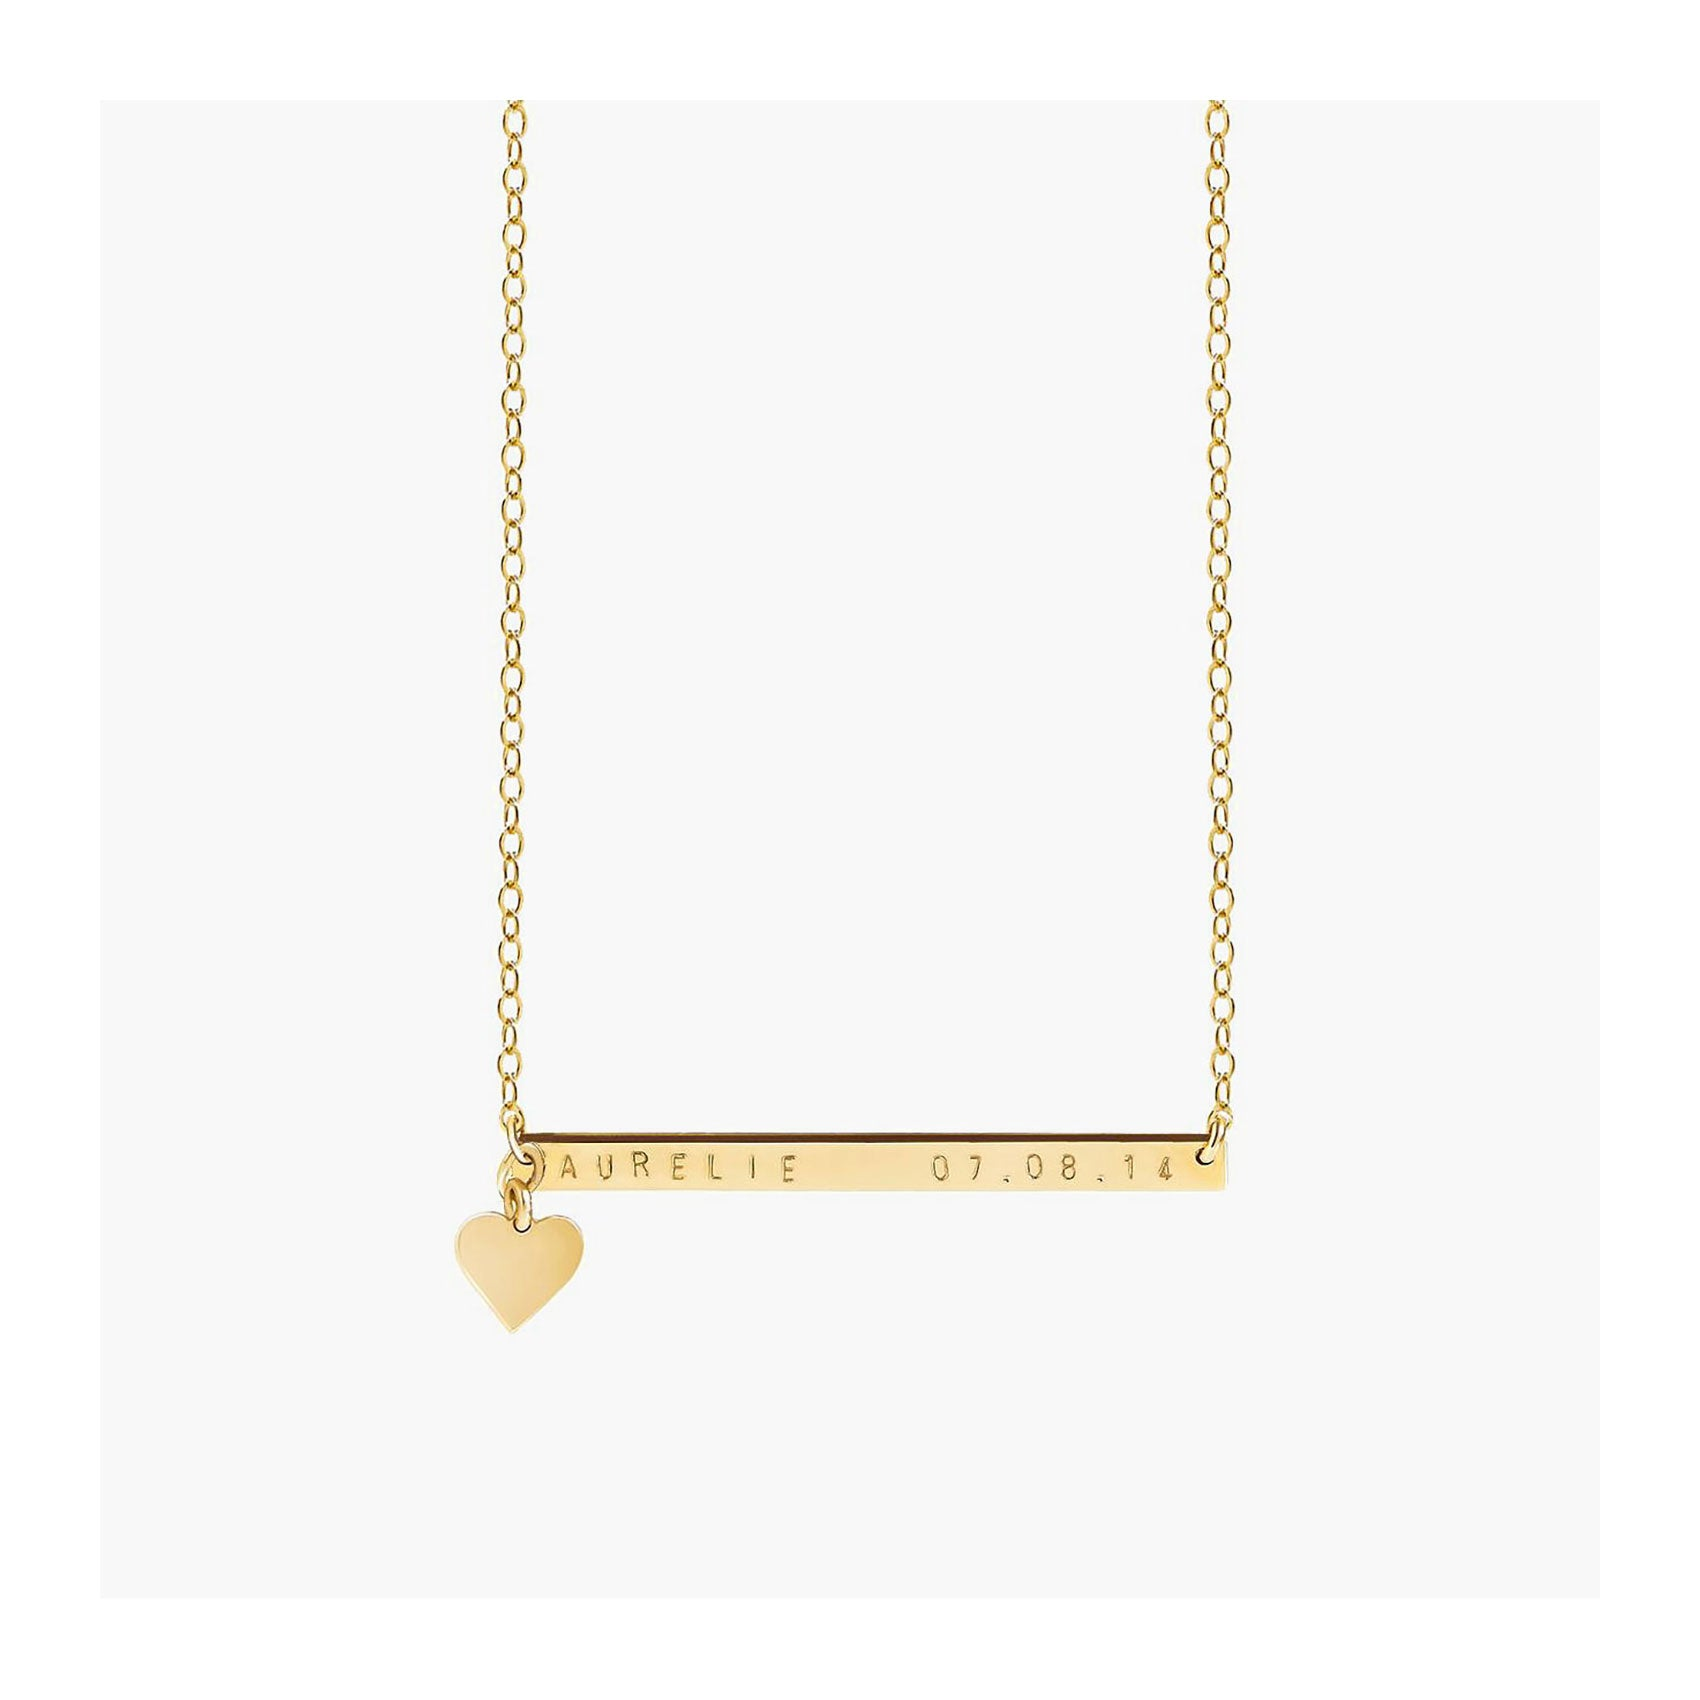 Gold bar necklace with a heart charm